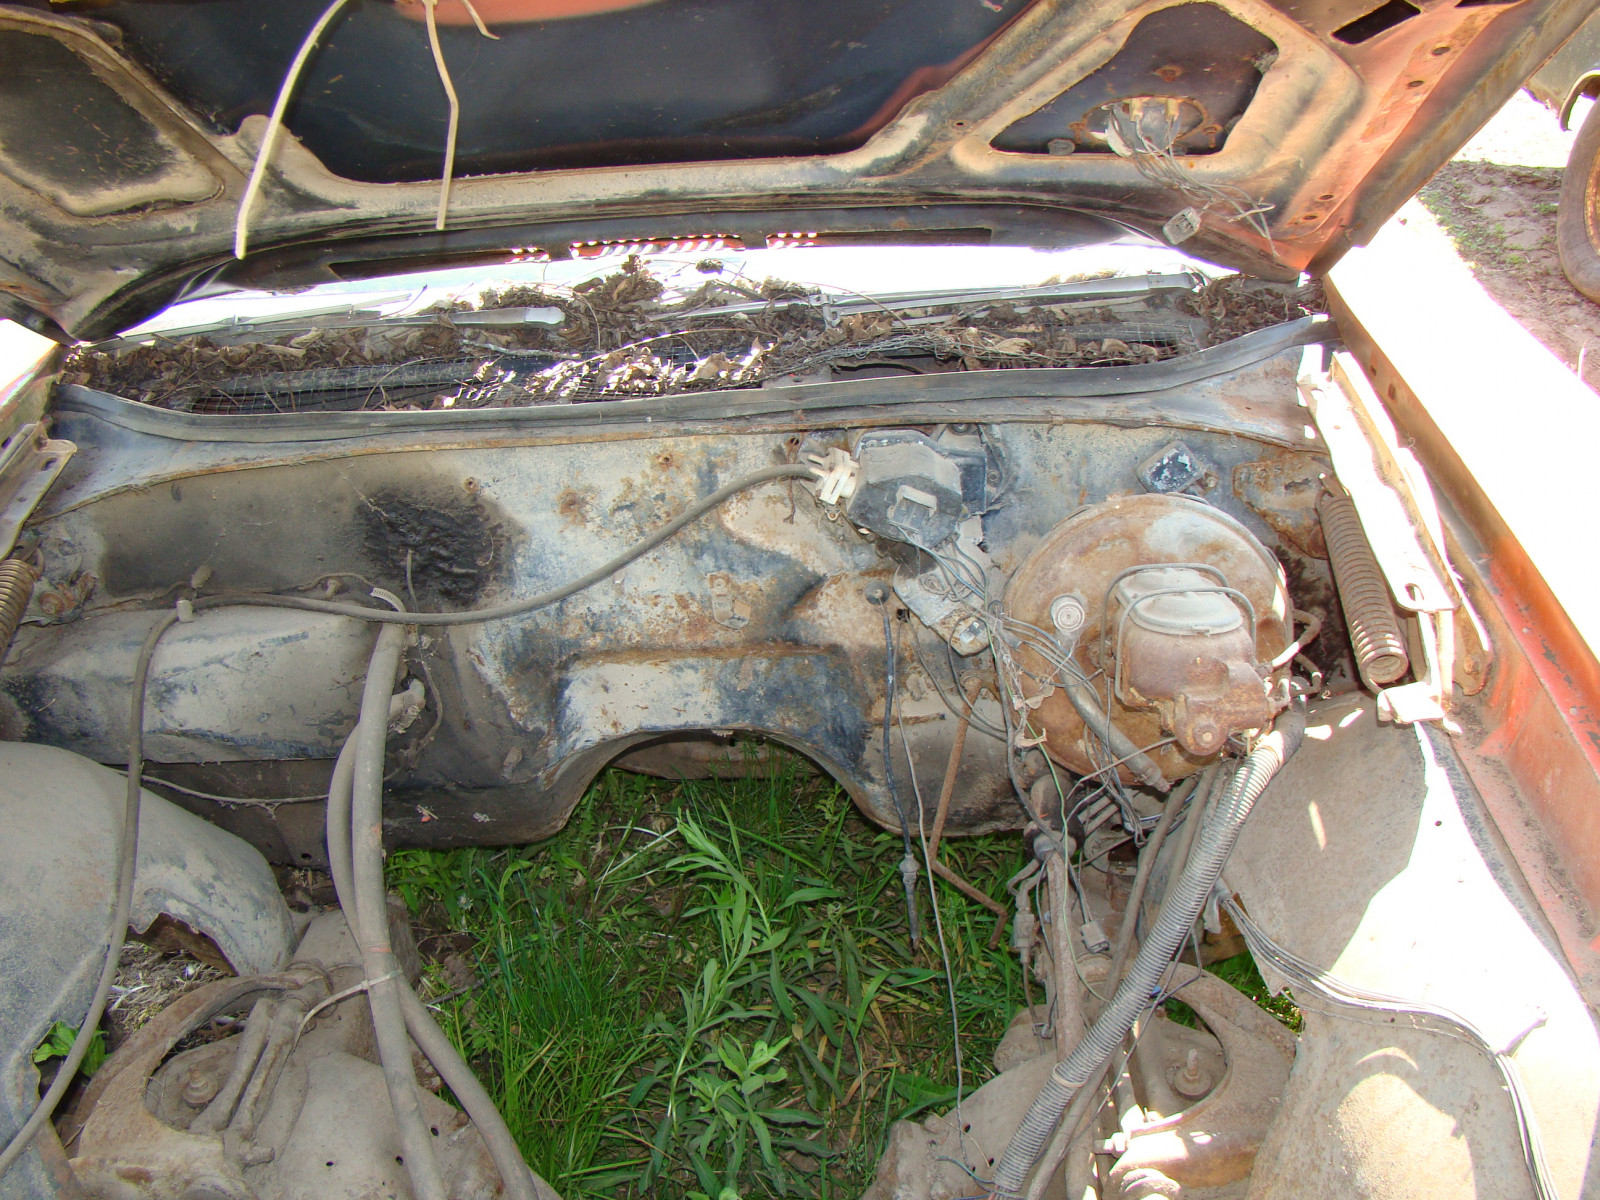 1969 Pontiac GTO RAM AIR IV Coupe Project - Image 6